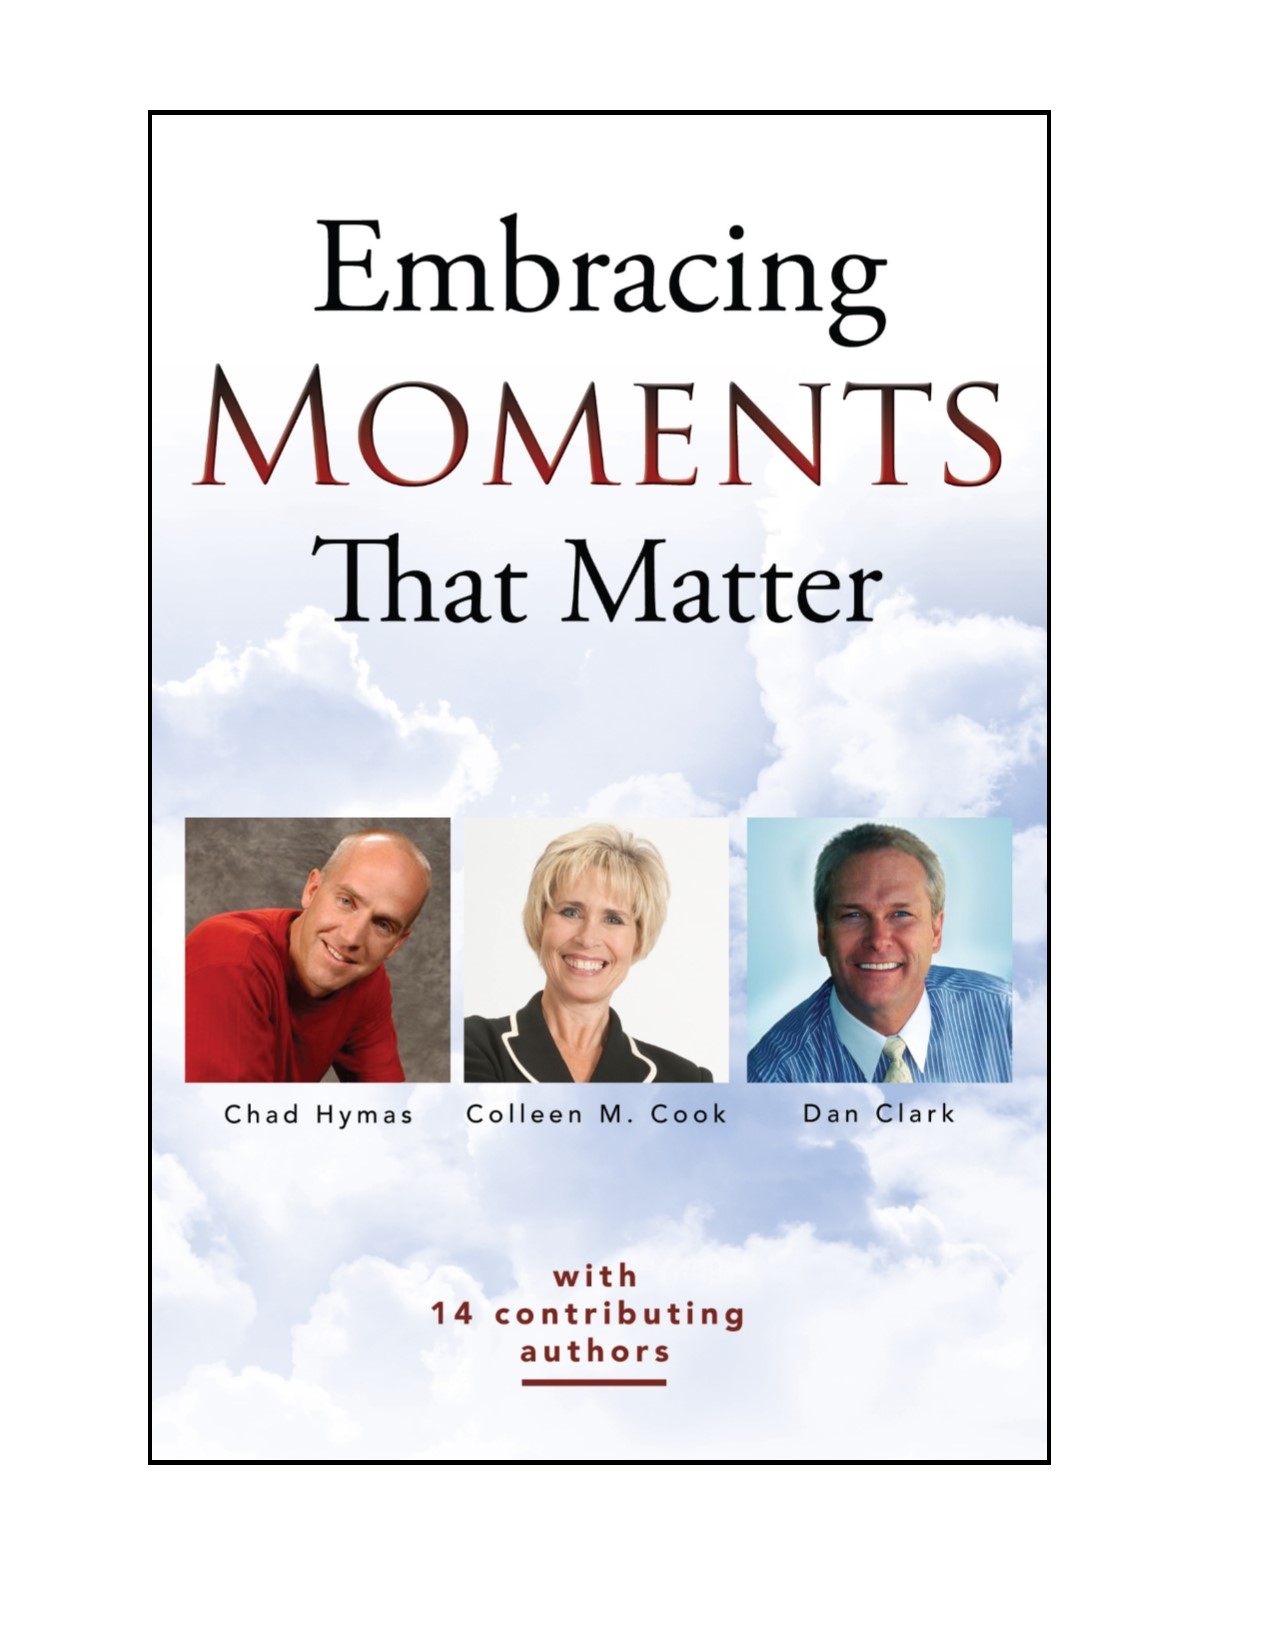 Embracing Moments That Matter